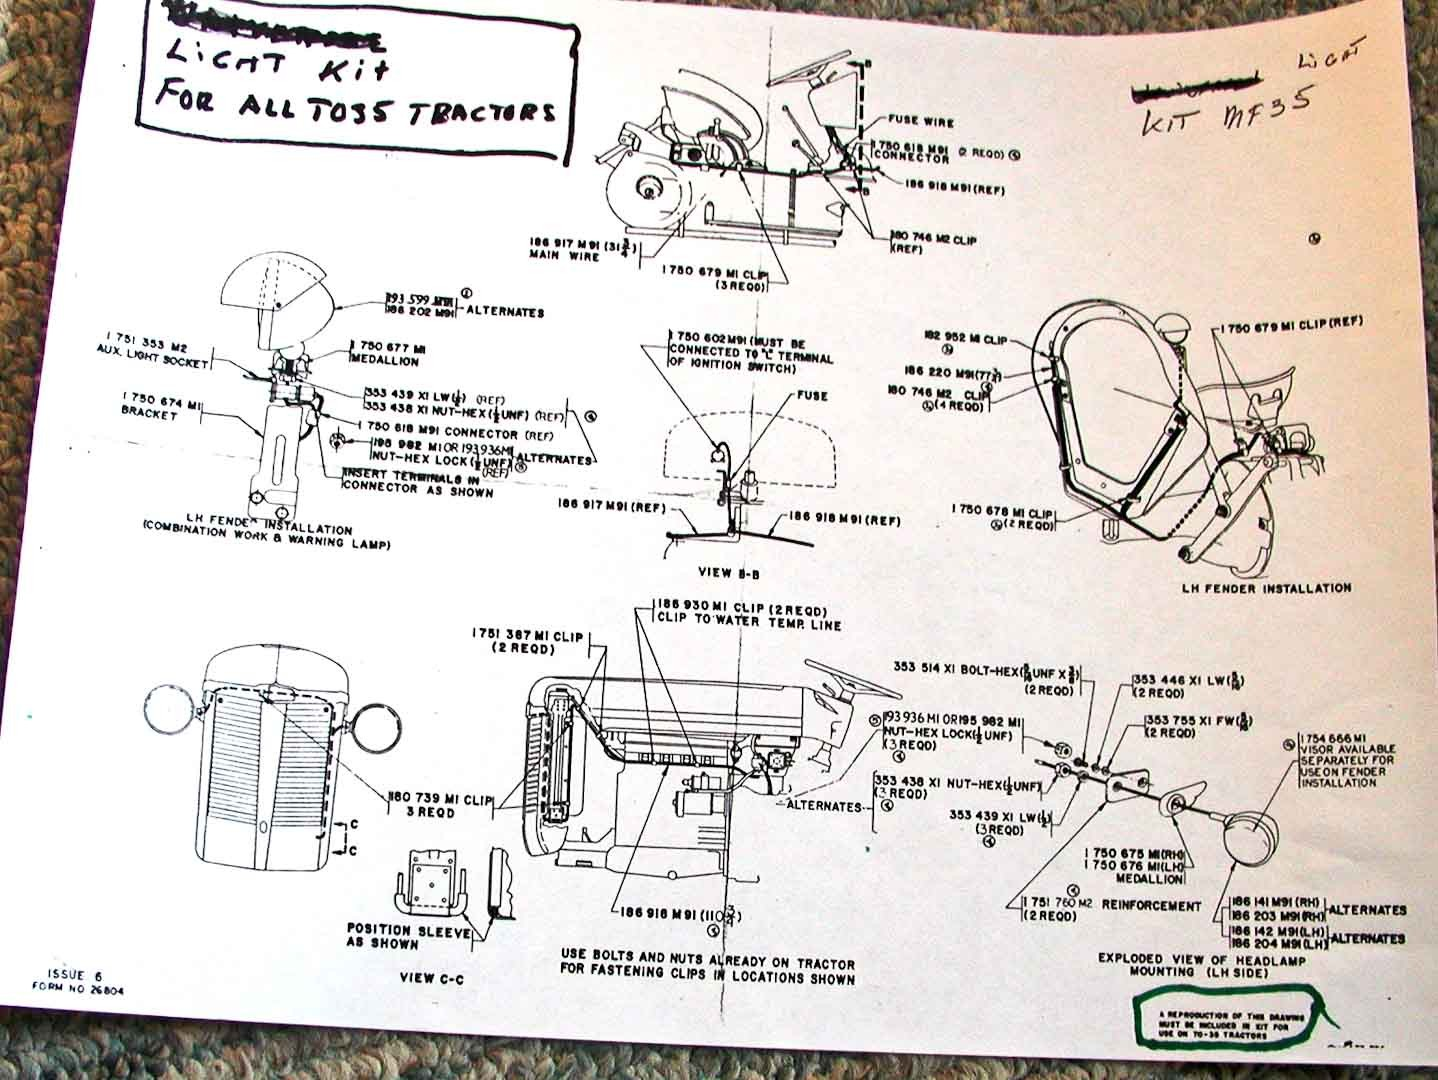 massey ferguson 35 wiring diagram electrical and lighting diagrams rh diagramchartwiki 1963 massey ferguson 35